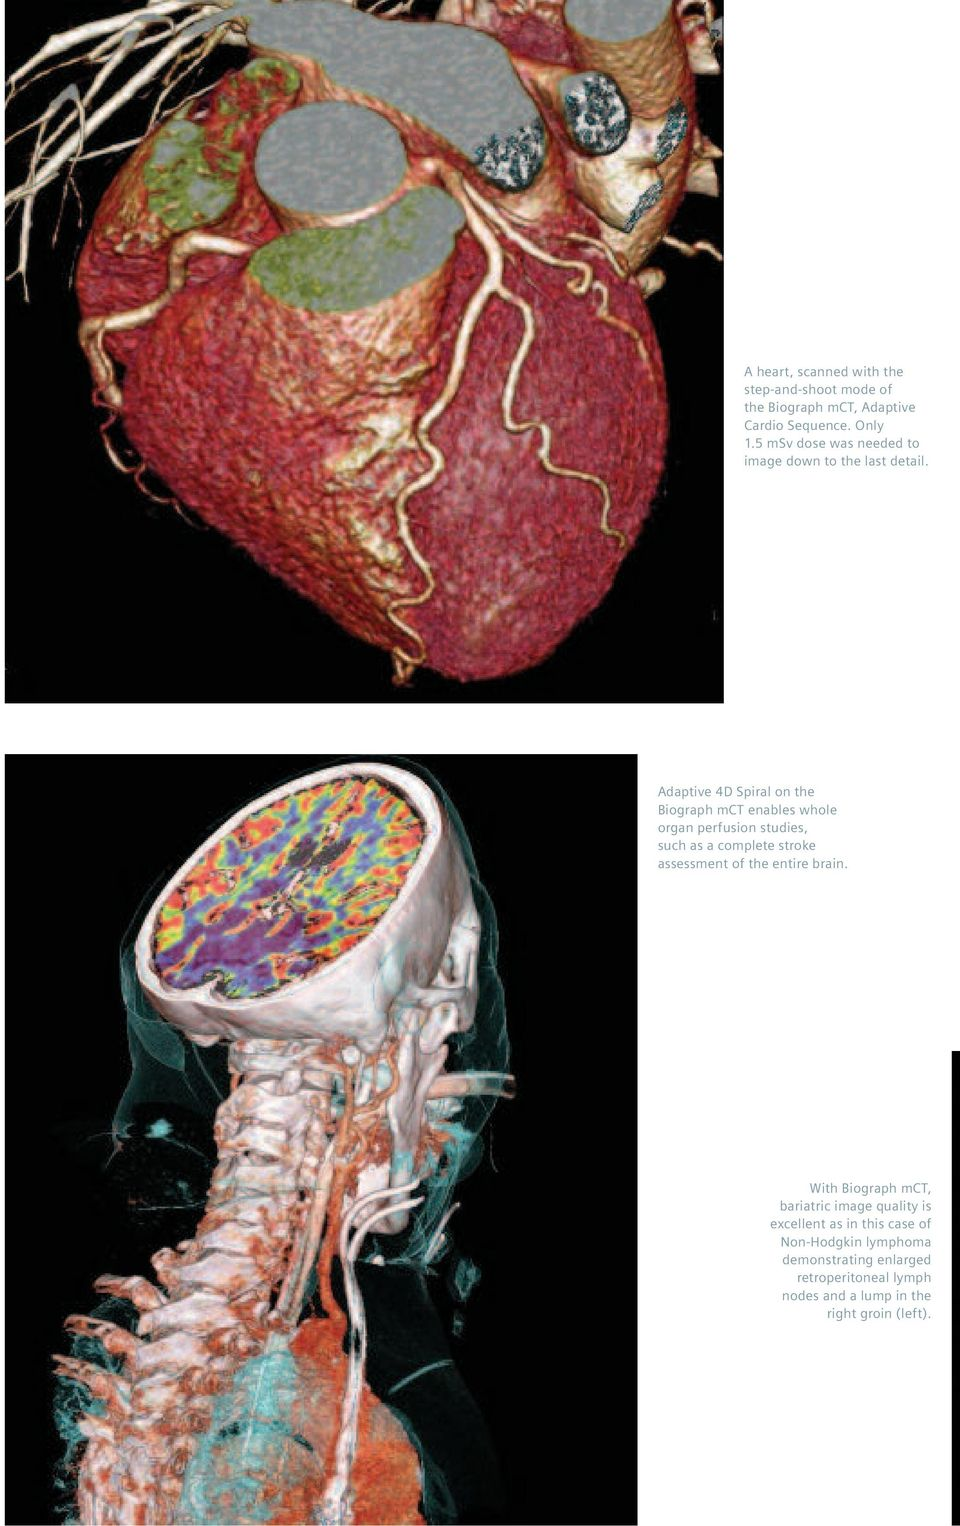 Adaptive 4D Spiral on the Biograph mct enables whole organ perfusion studies, such as a complete stroke assessment of